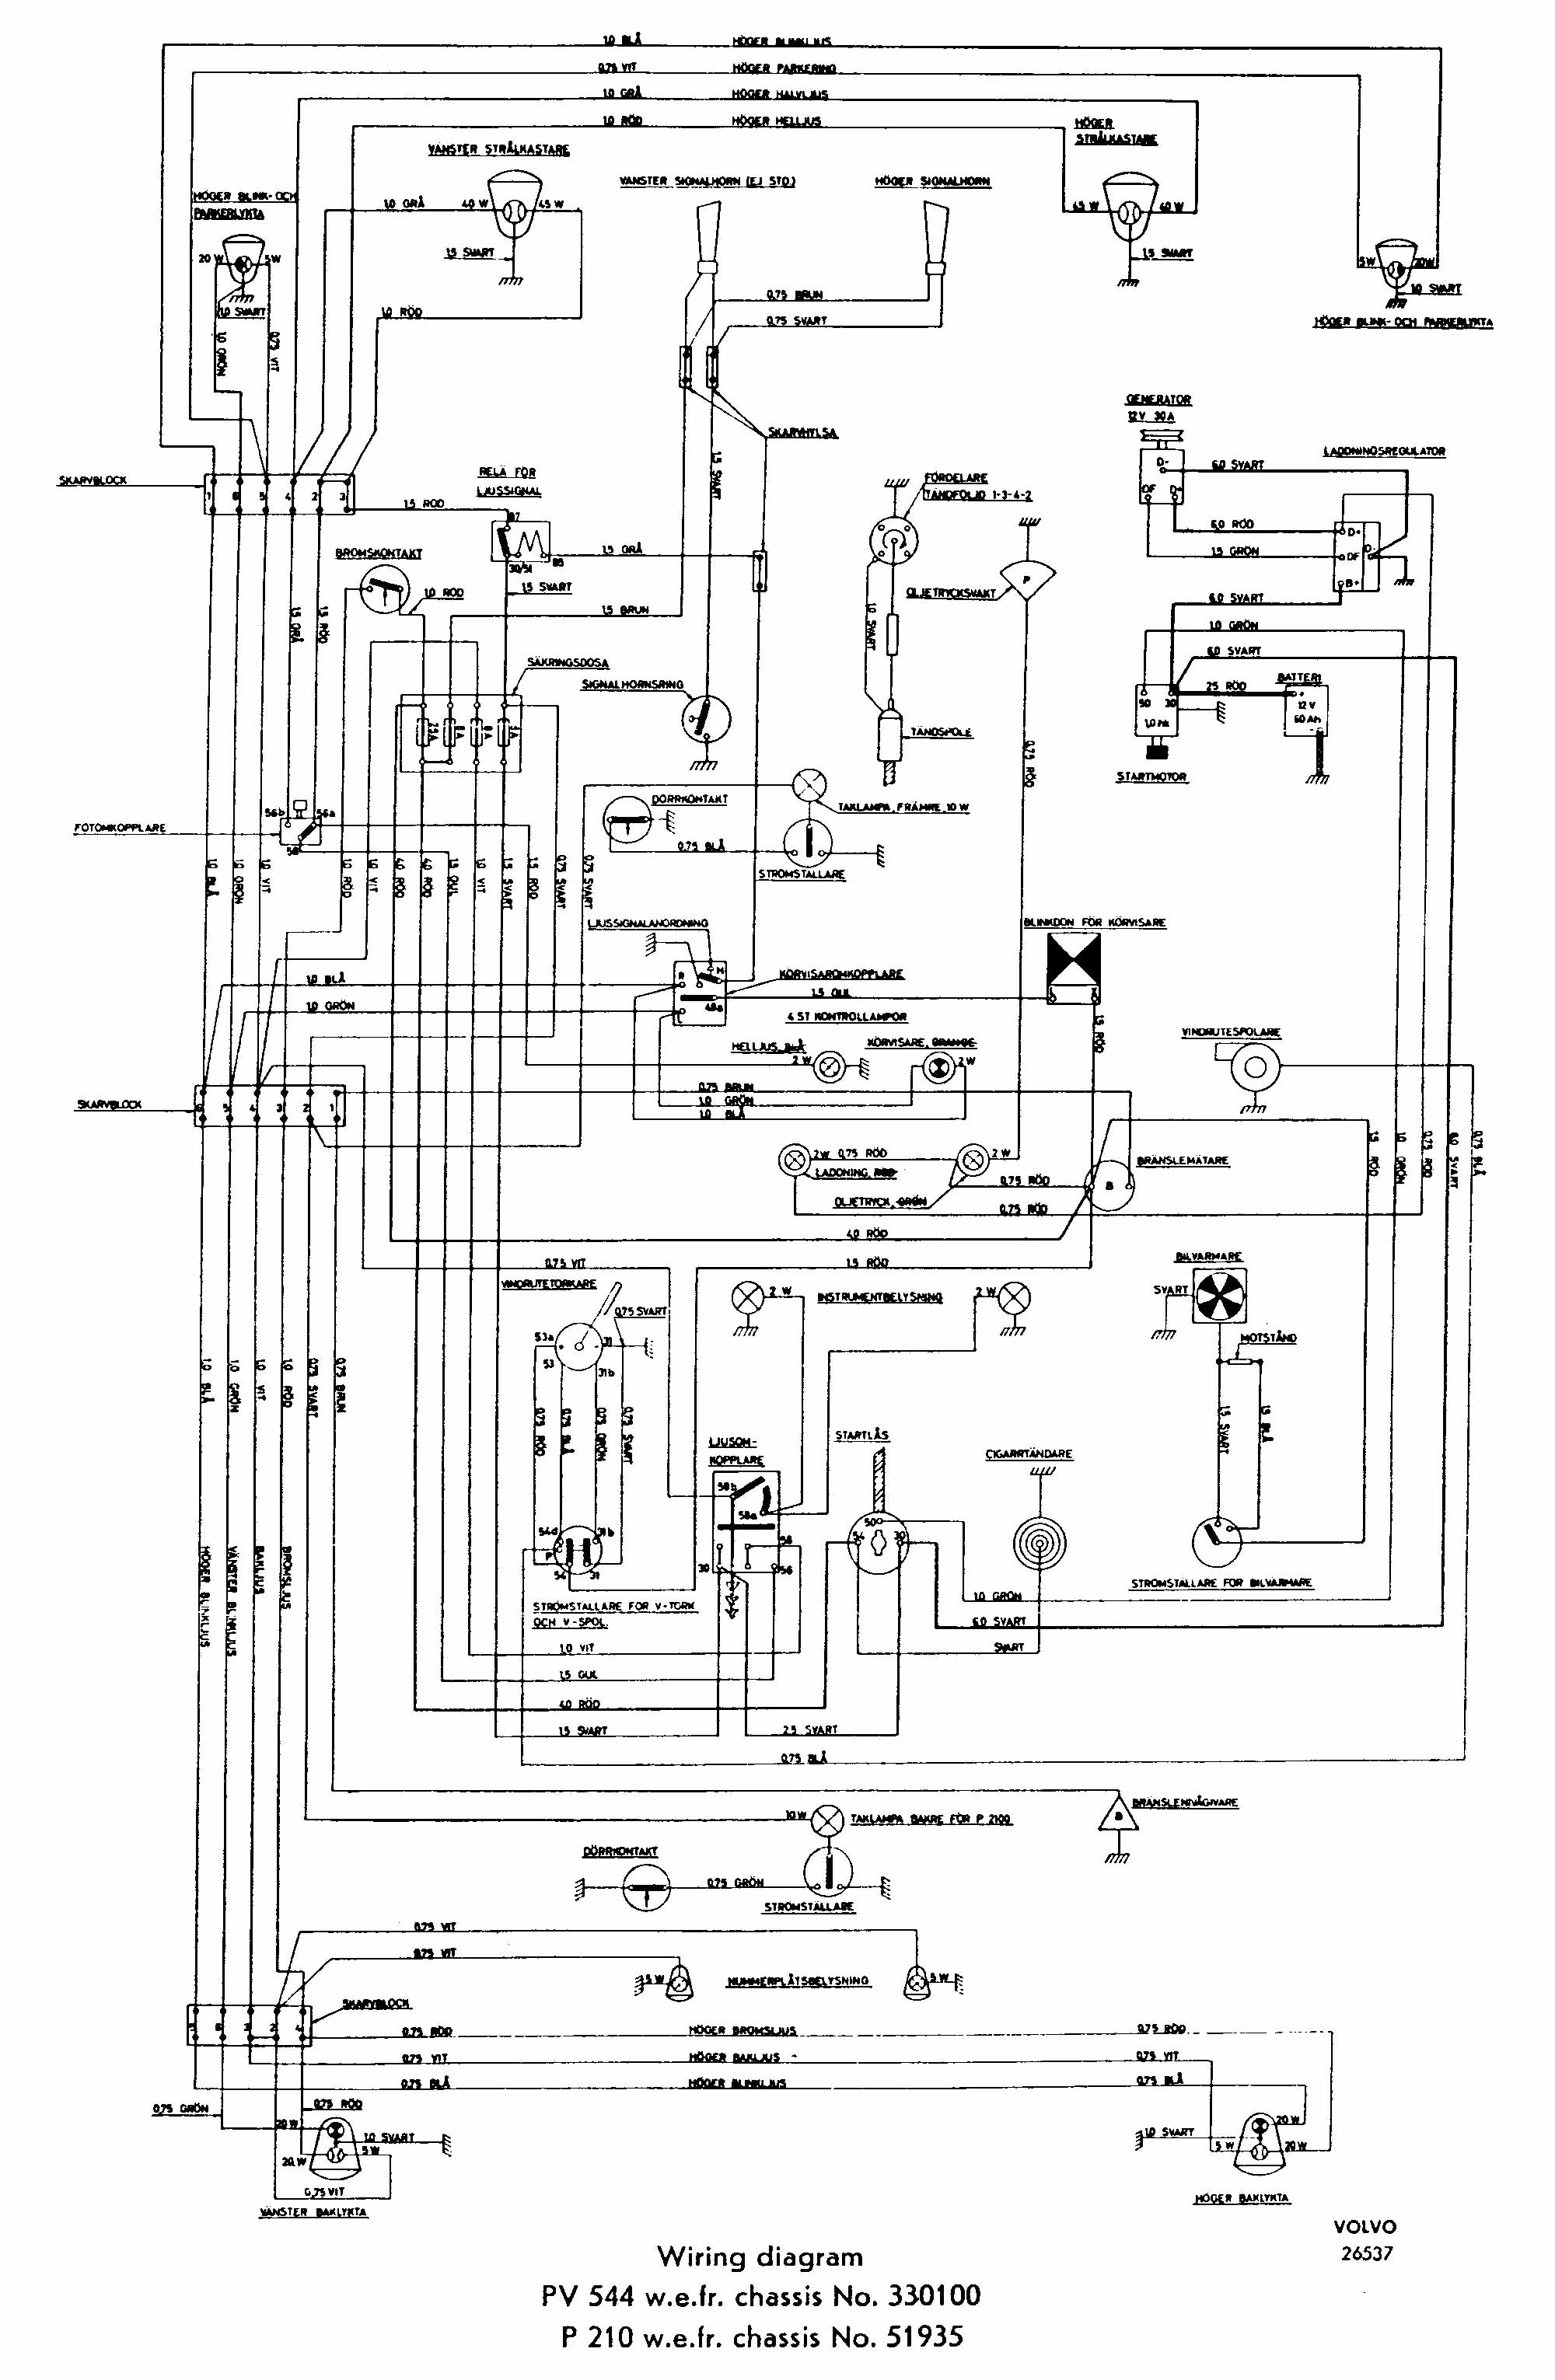 544 Wiring Diagram sw em fuses, allocation and troubleshooting volvo amazon wiring diagram at edmiracle.co